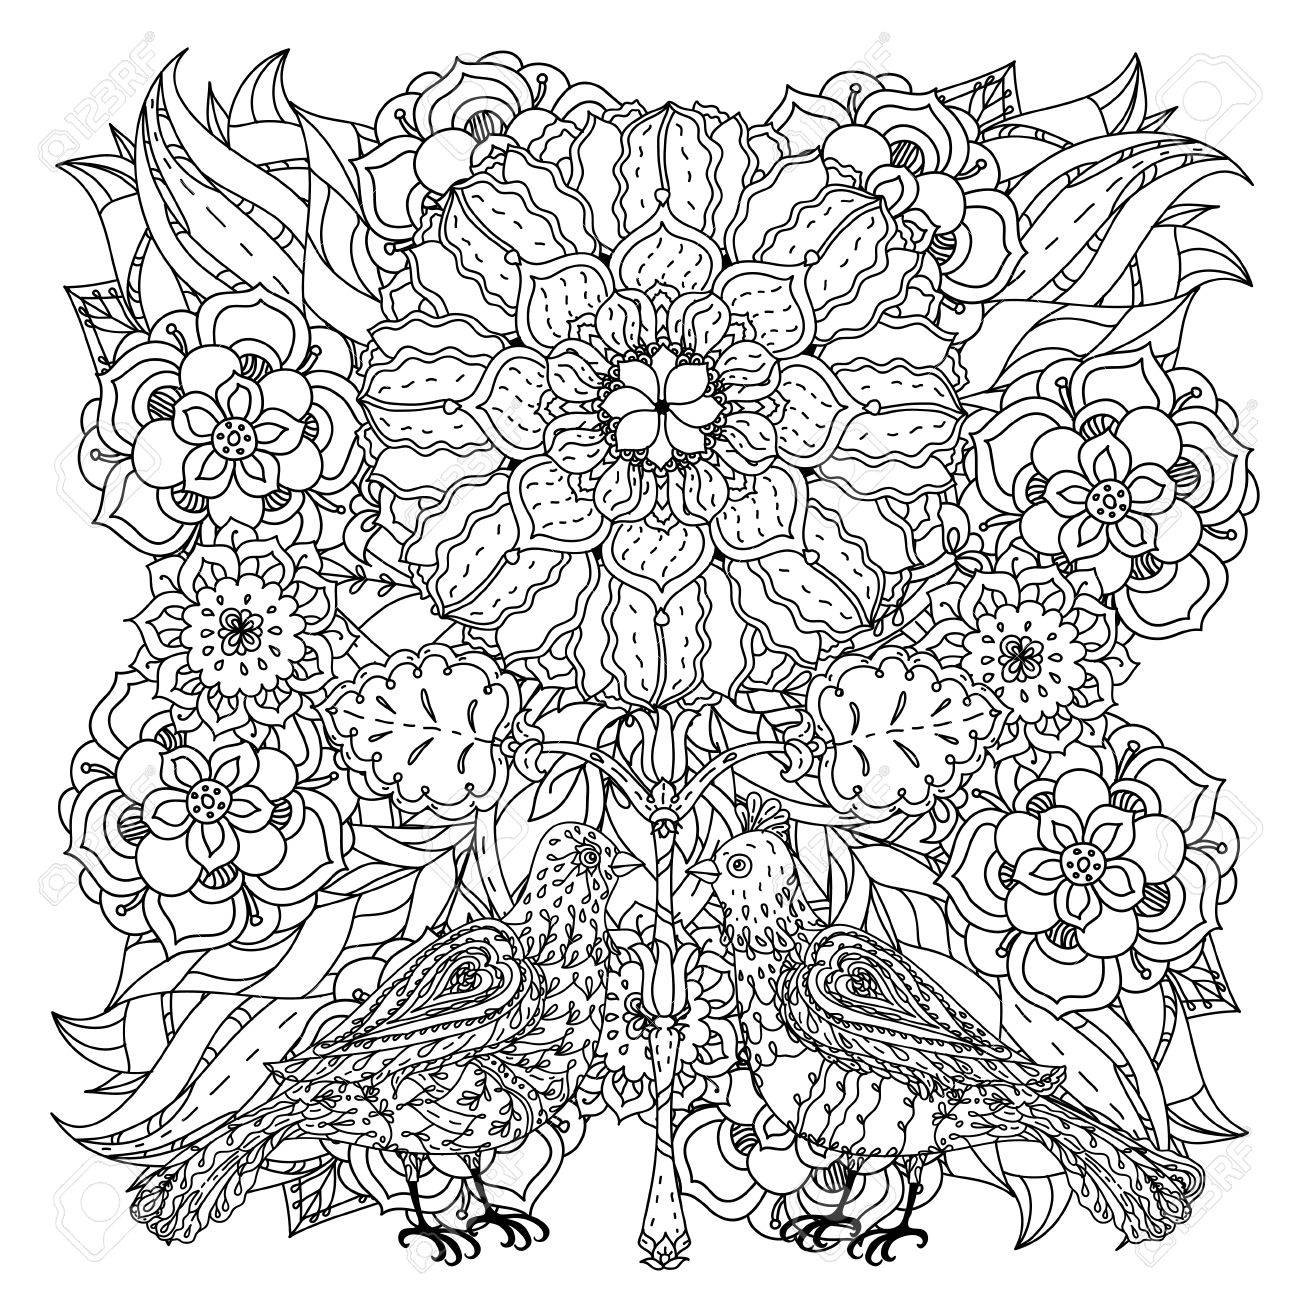 Zen coloring flowers - Contoured Mandala Shaped Flowers And Birds For Adult Coloring Book Or Art Therapy Style Zen Drawing